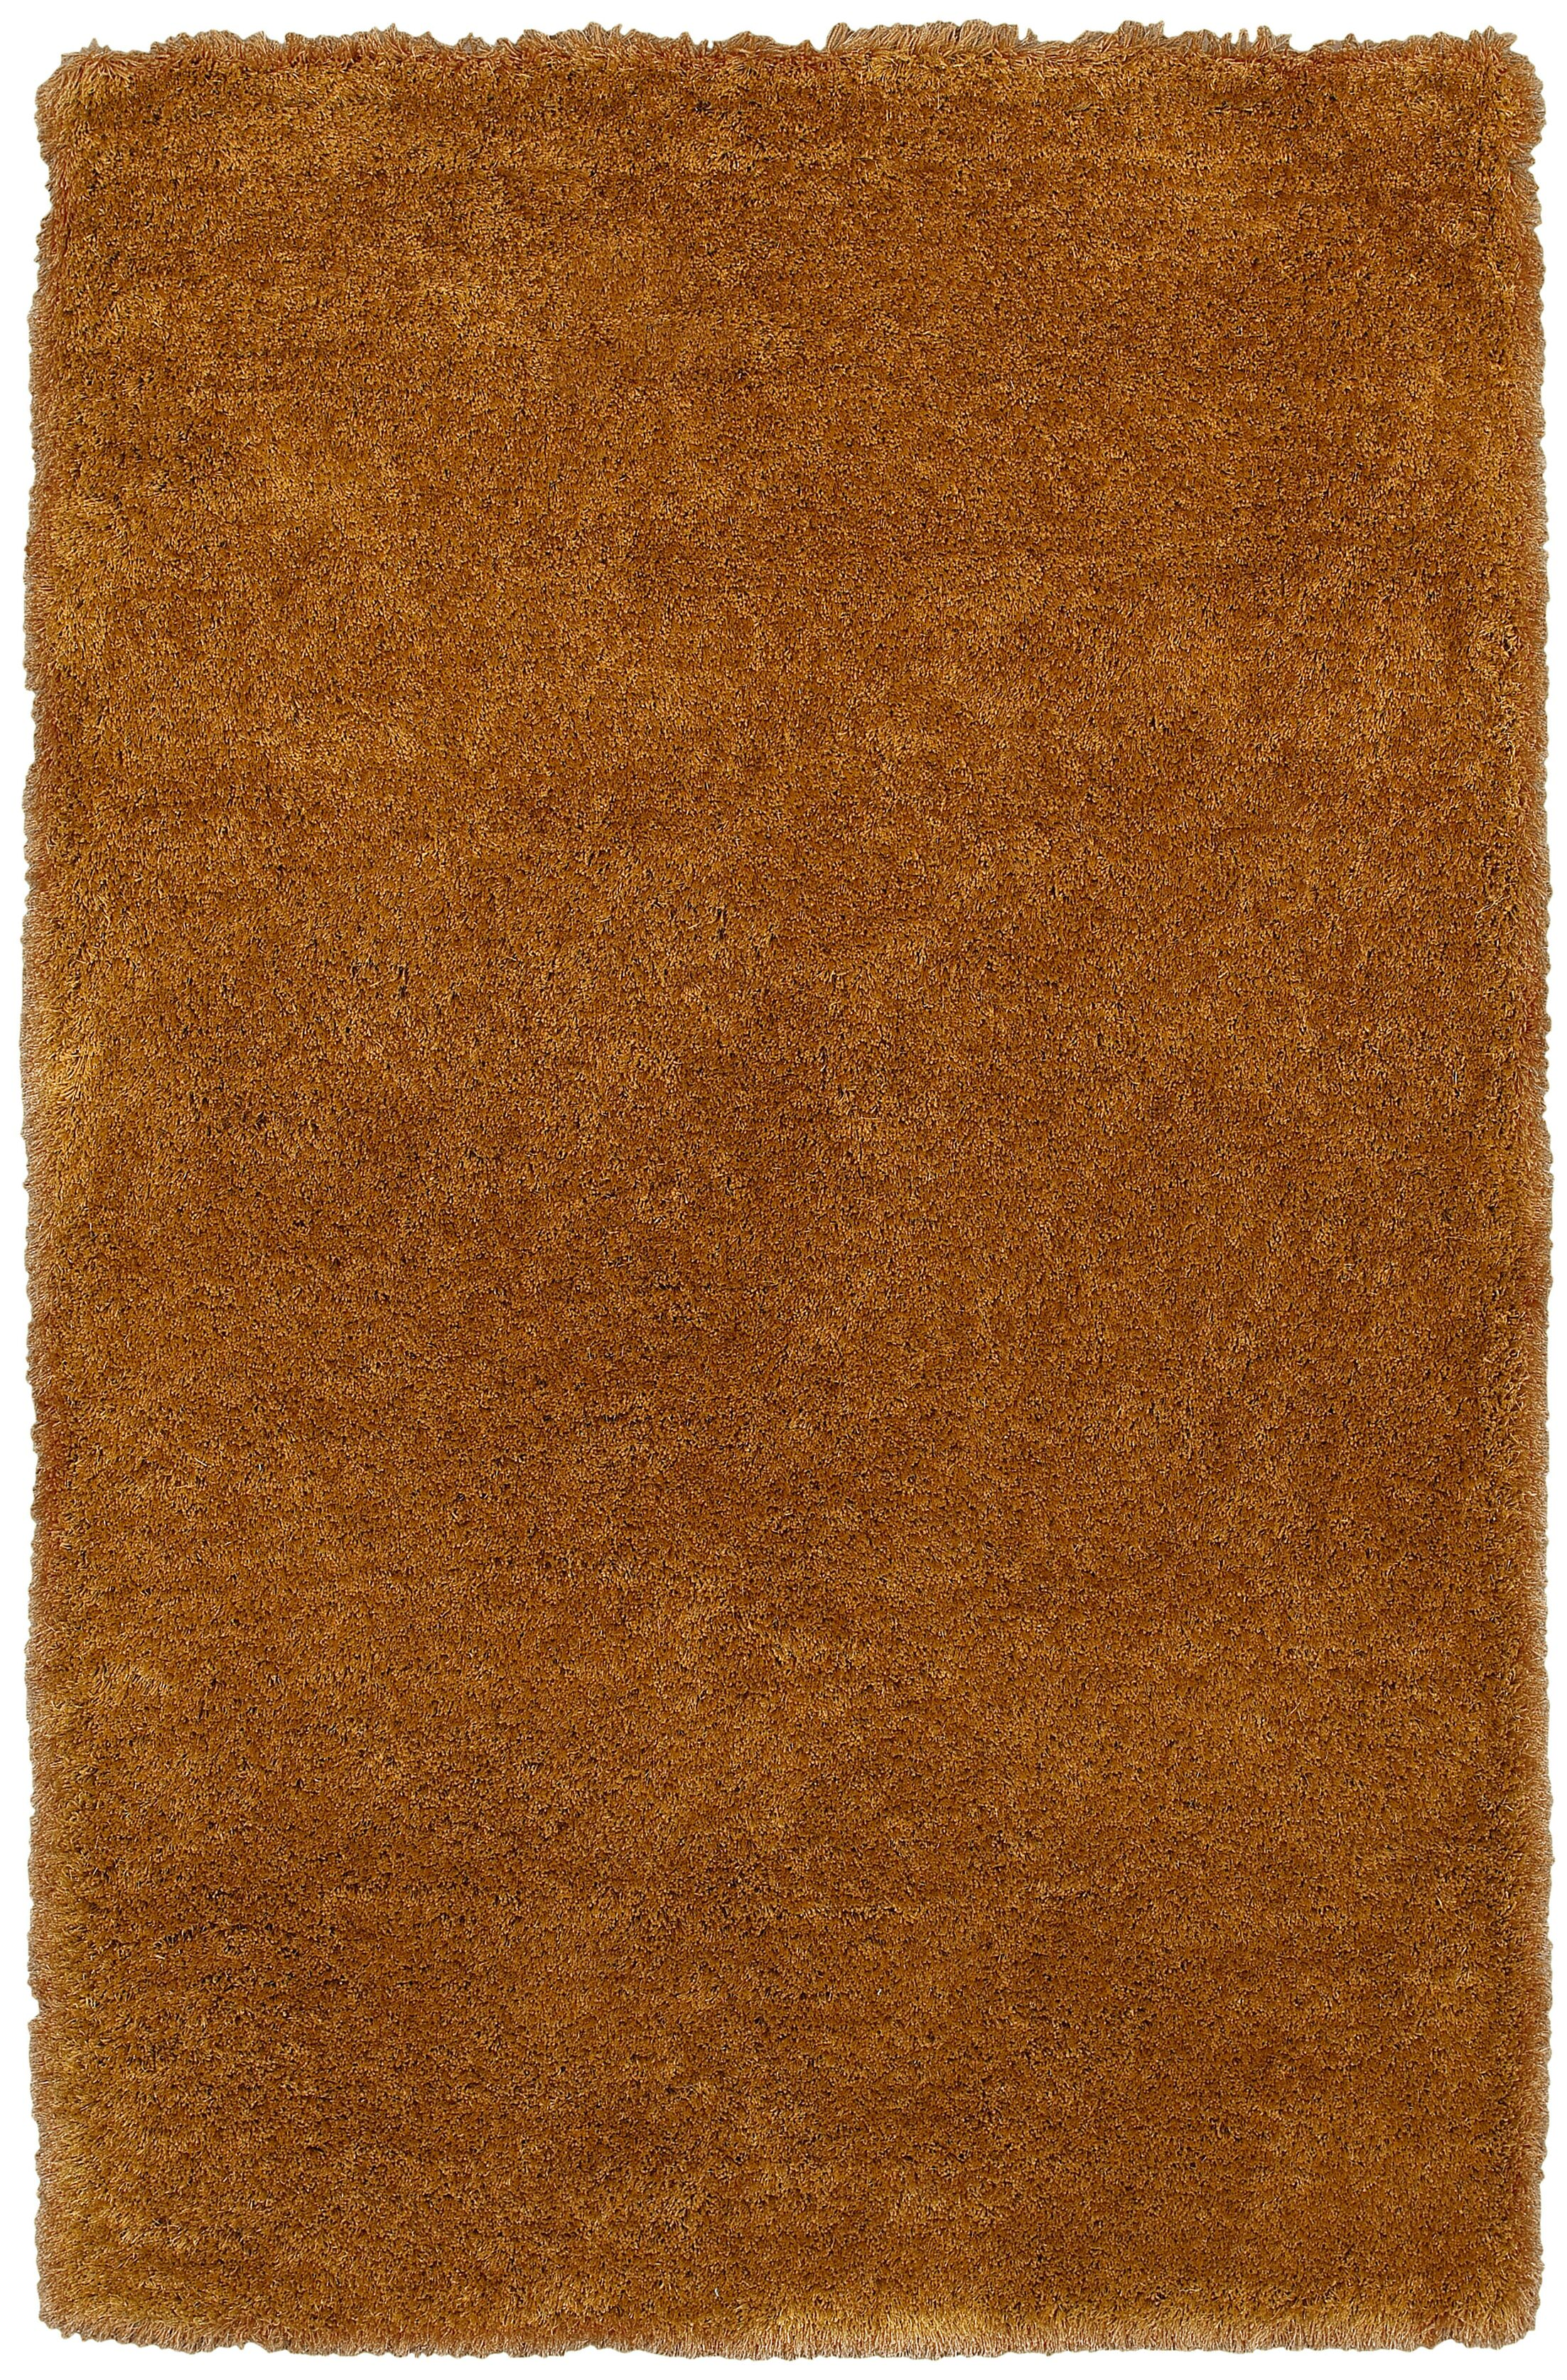 Mathena Hand-Tufted Gold Area Rug Rug Size: Rectangle 8' x 10'